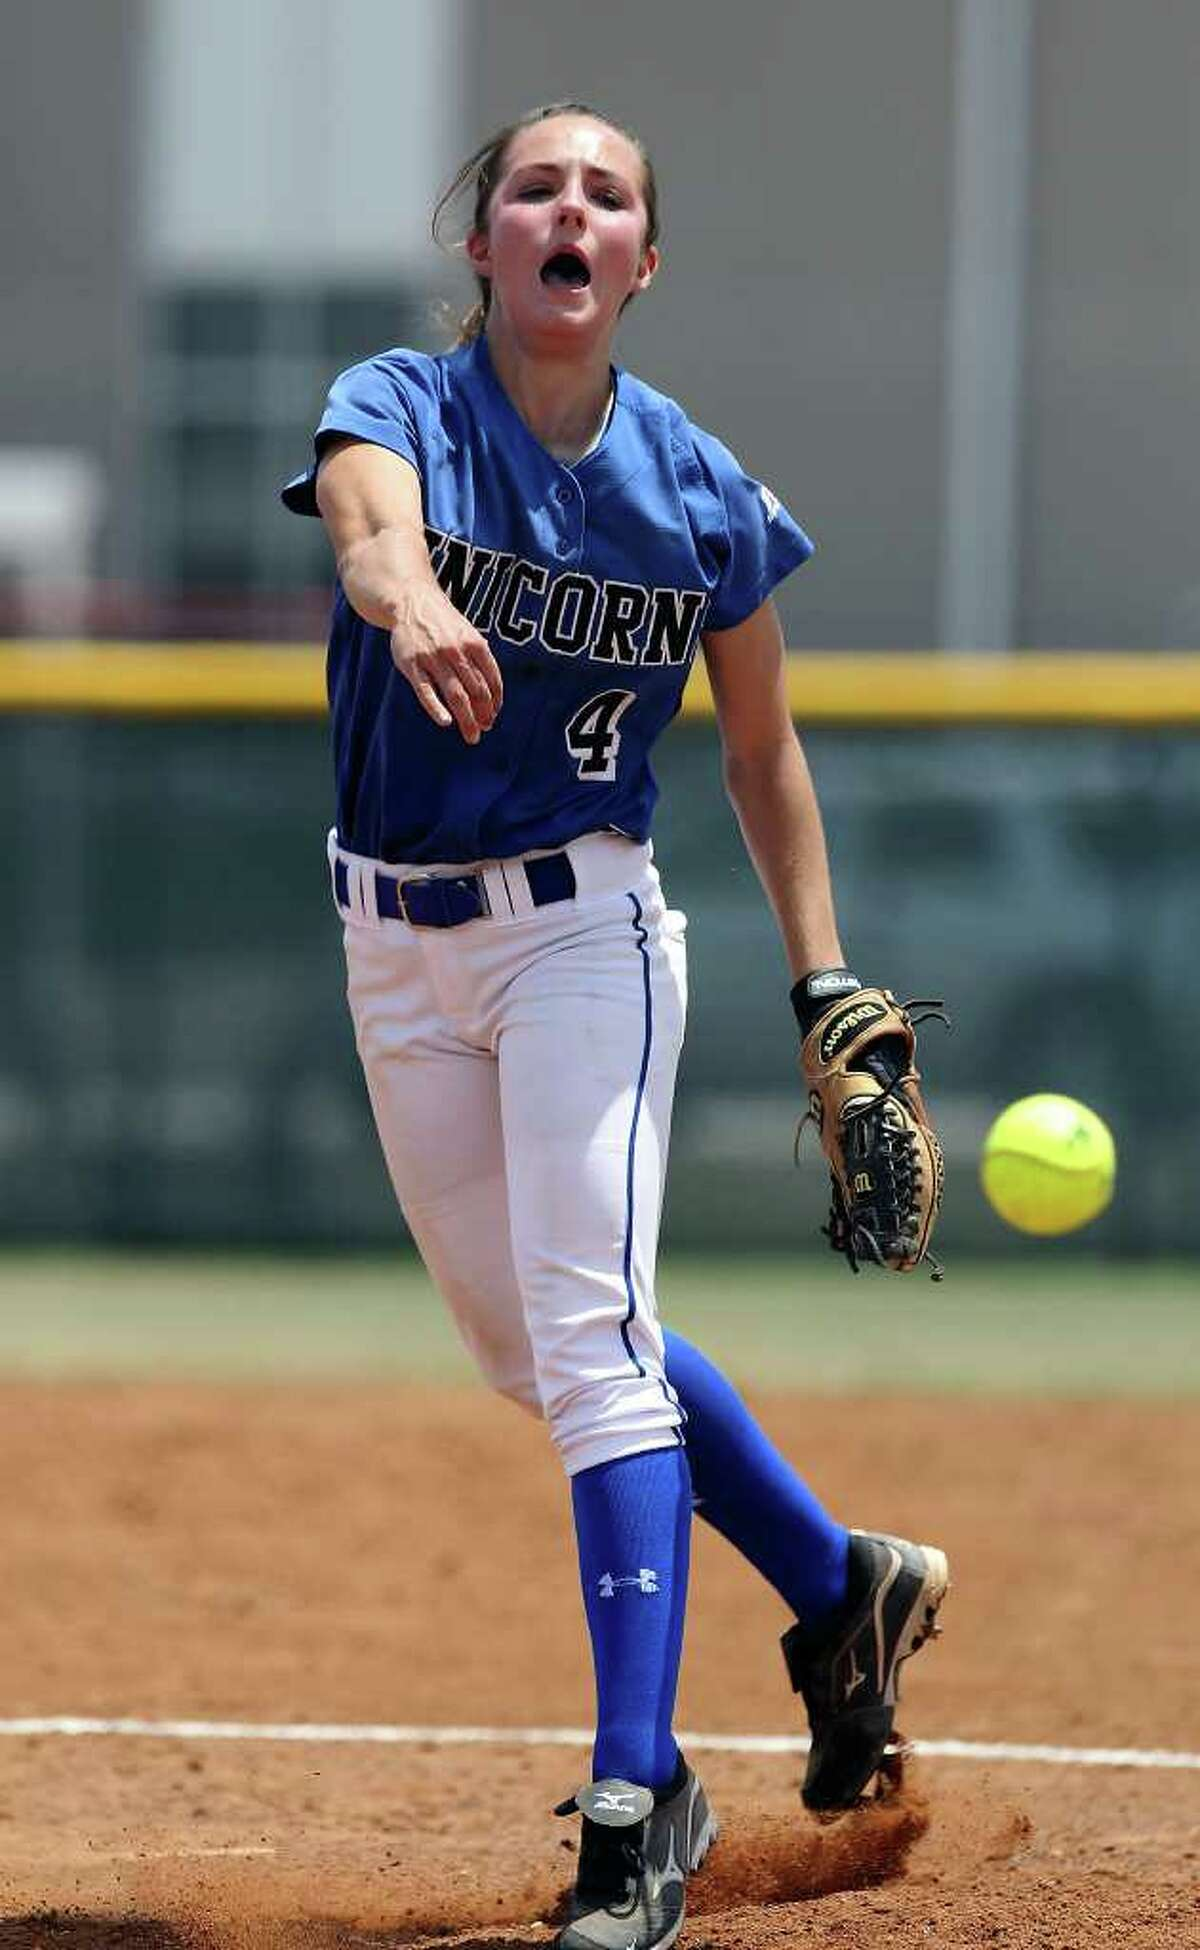 New Braunfels' pitcher Amanda Lopez fires a pitch in softball against East Central on Saturday, May 7, 2011. New Braunfels clinched a playoff victory winning 6-2 in game 2. Kin Man Hui/kmhui@express-news.net